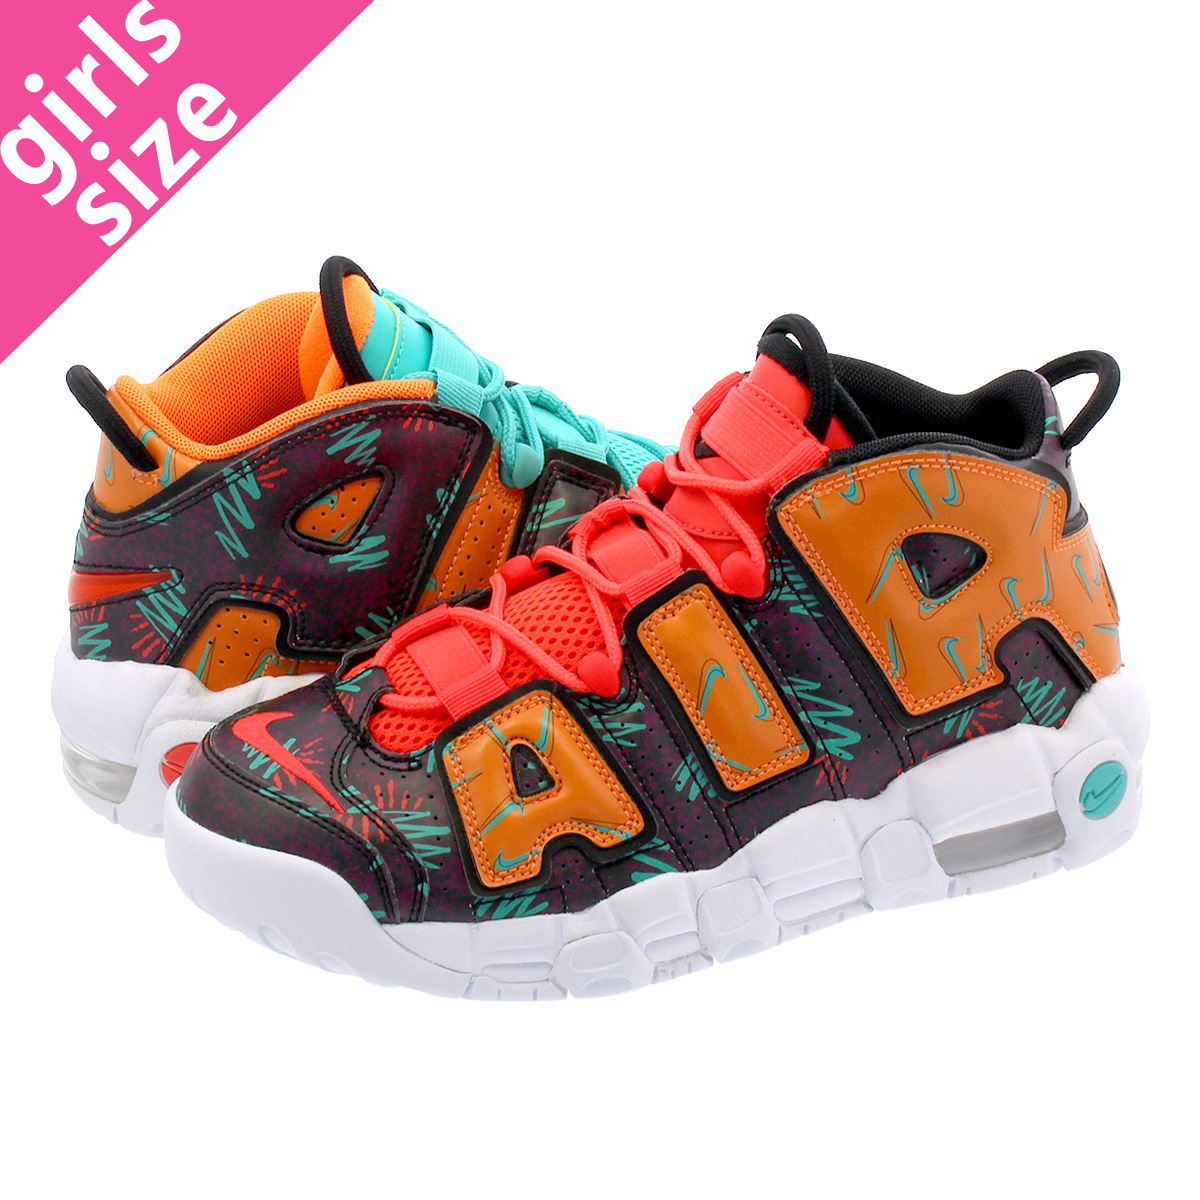 6ed2228003a8 NIKE AIR MORE UPTEMPO GS Nike more up tempo GS TOTAL ORANGE BLACK HYPER  JADE BORDEAUX at3408-800